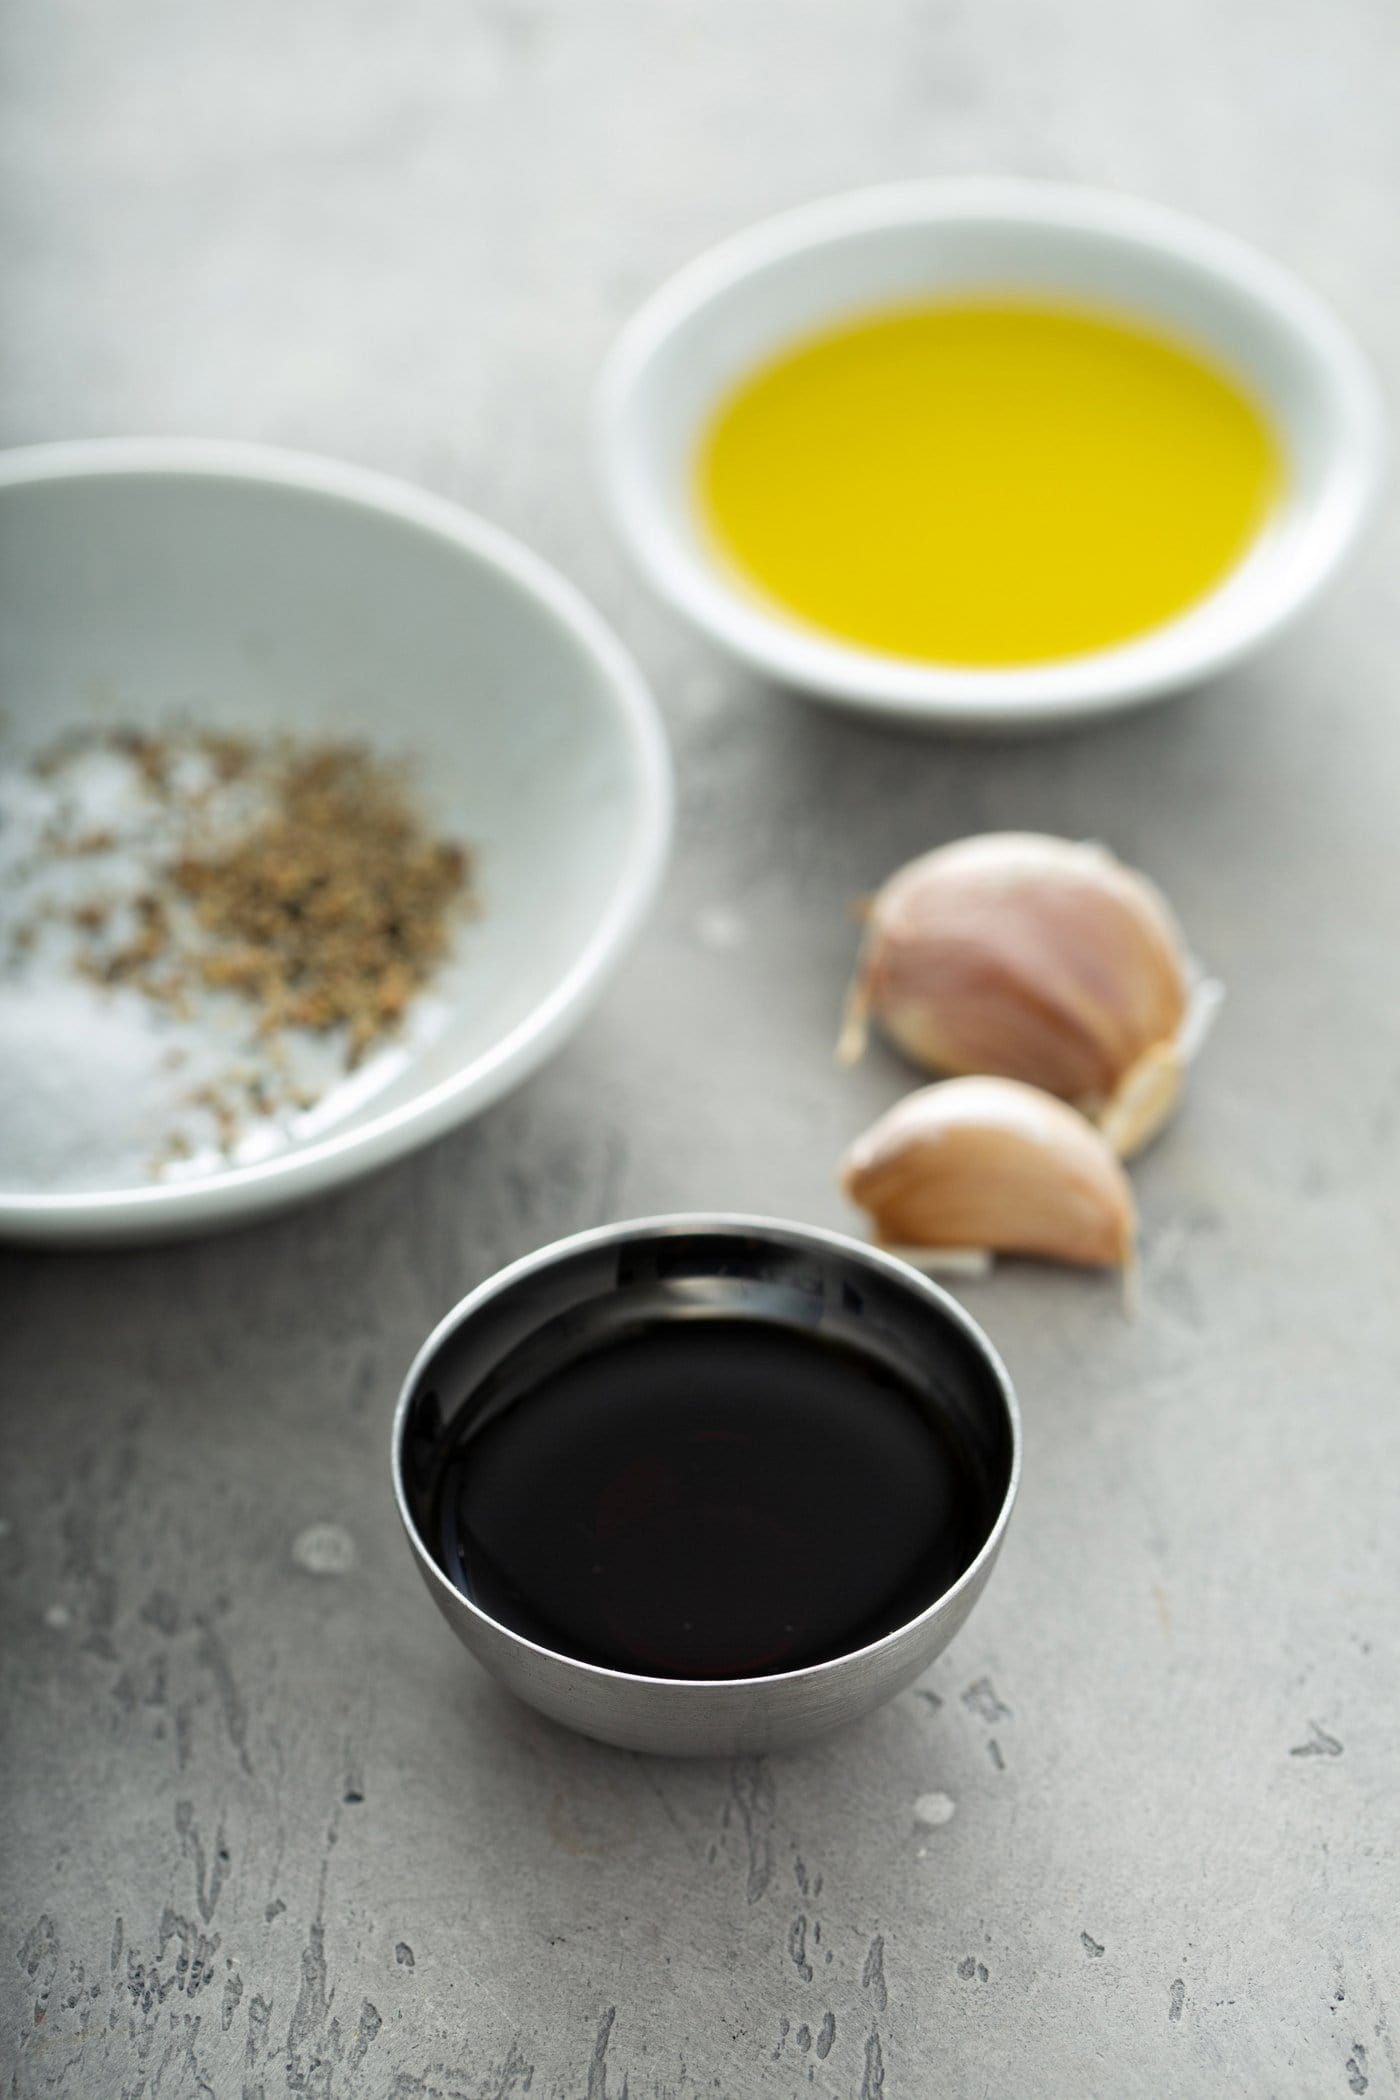 Small containers of spices, balsamic vinegar, oil and two cloves of garlic.